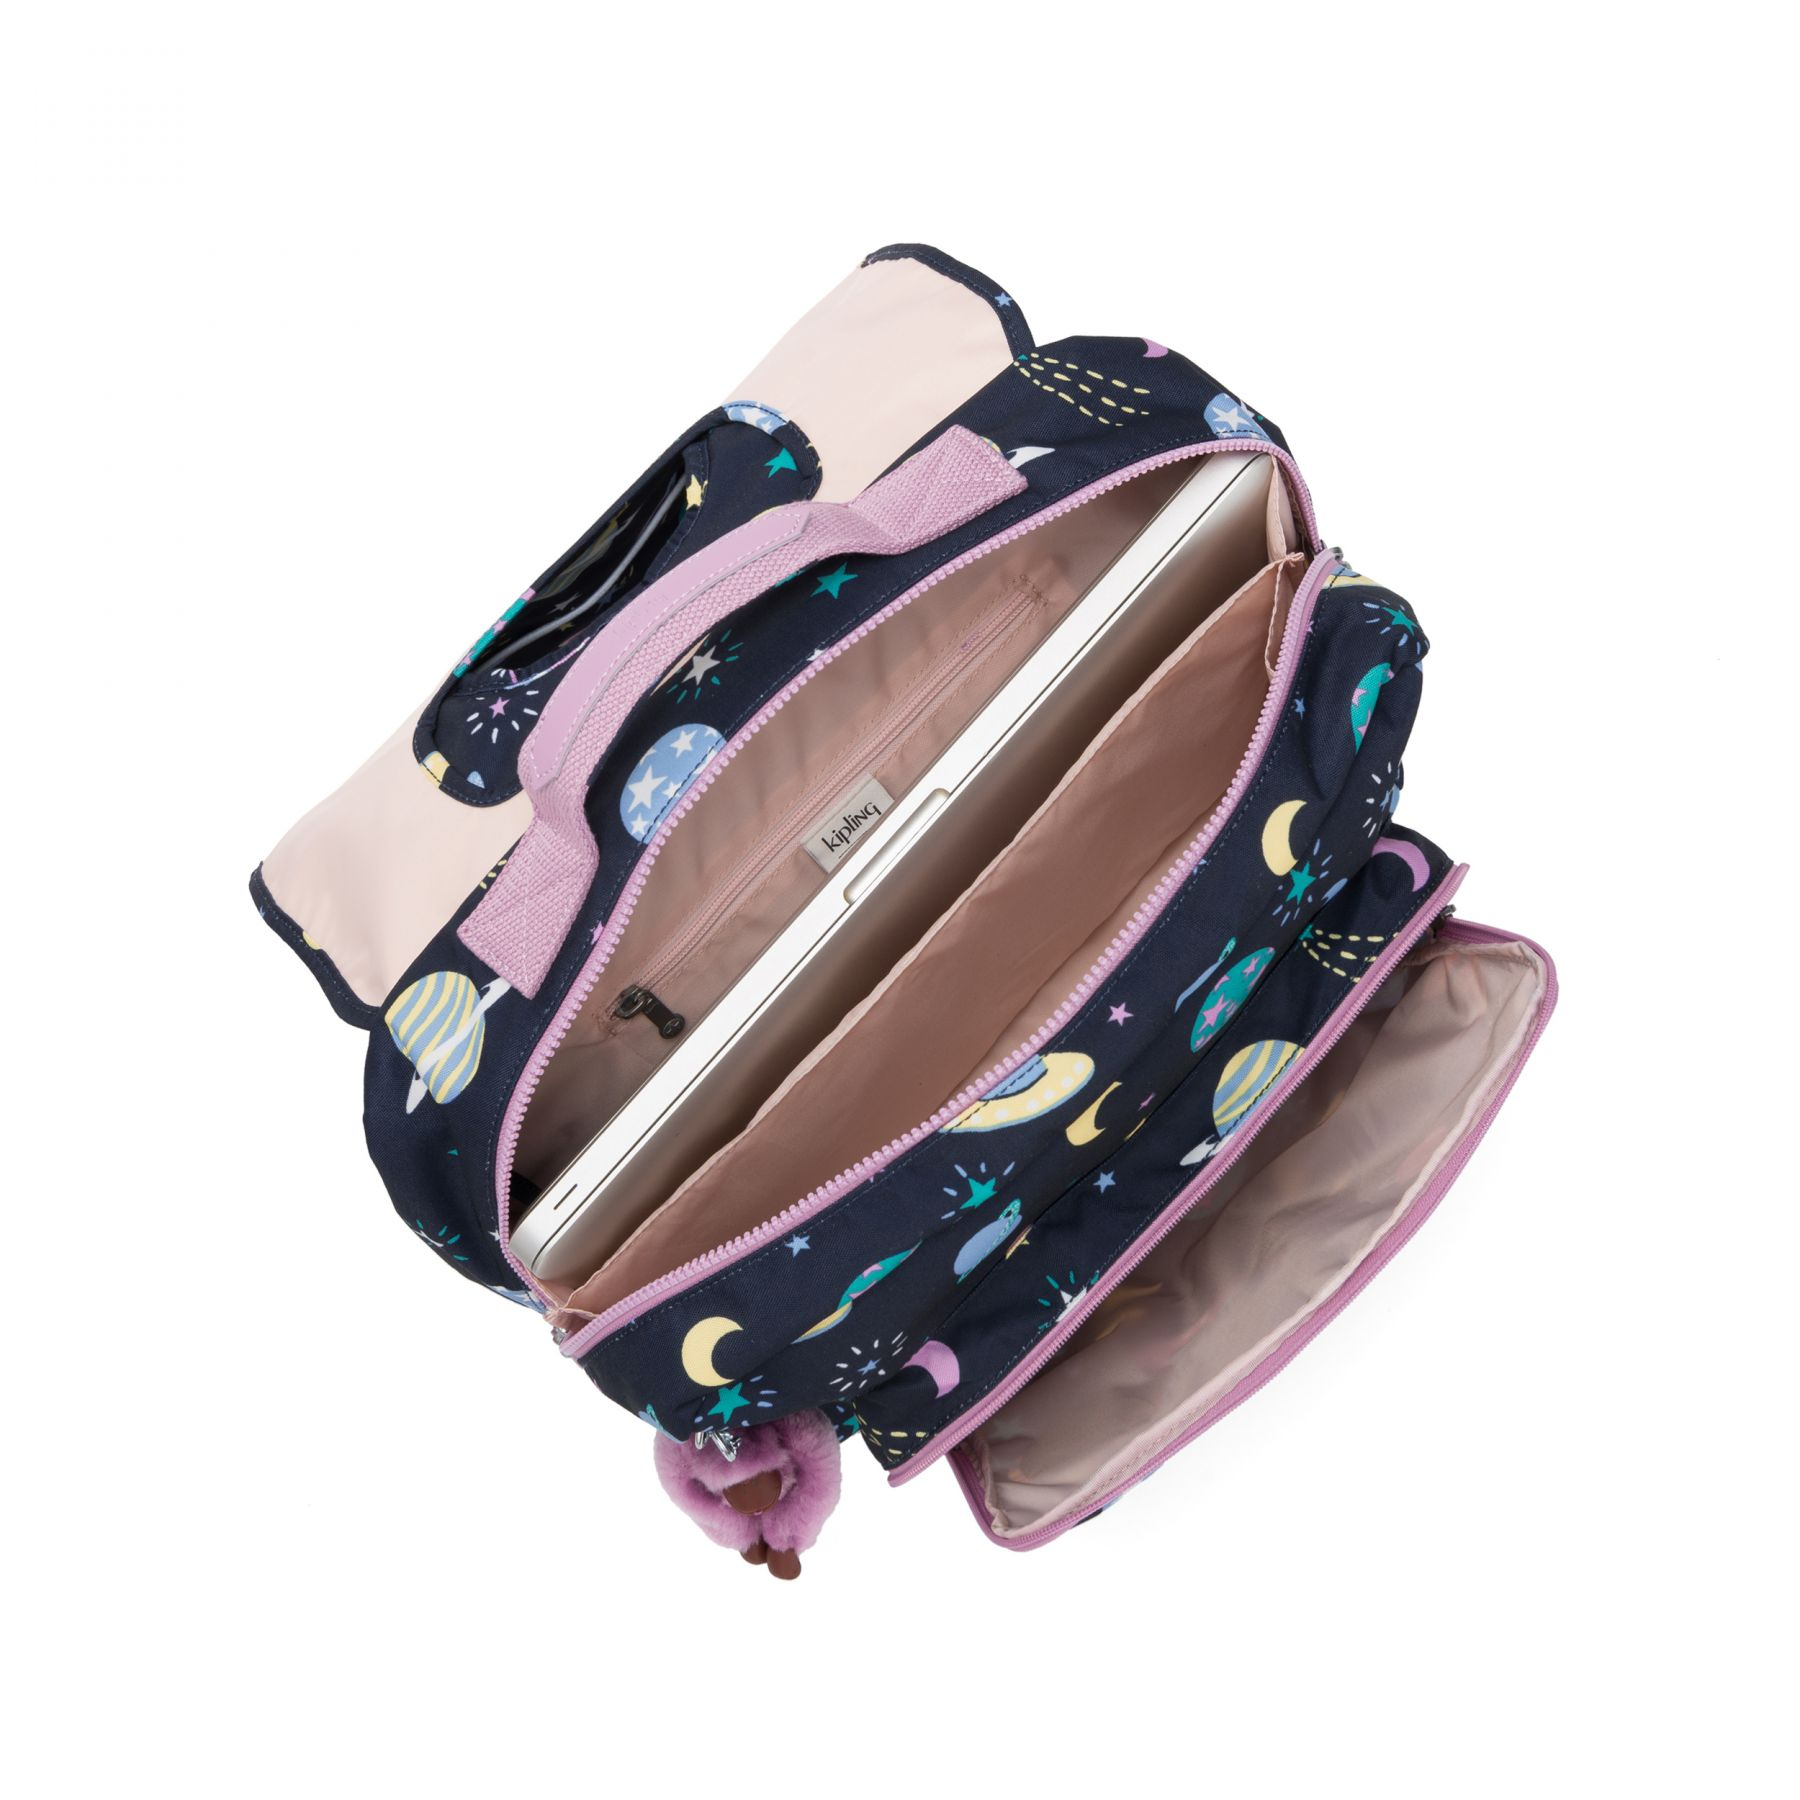 INIKO SCHOOL BAGS by Kipling